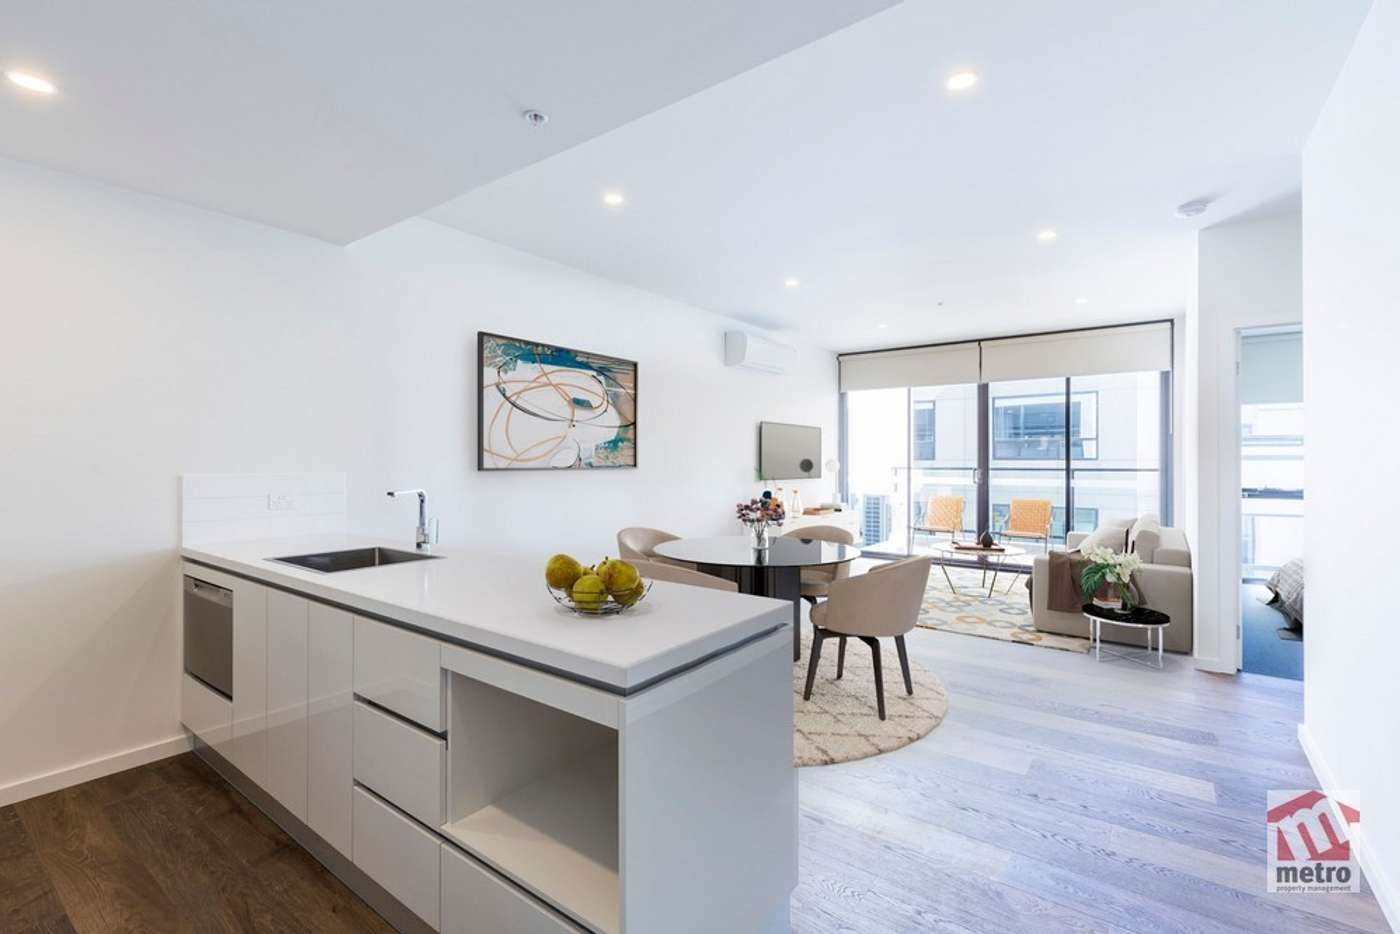 Main view of Homely apartment listing, 206A/23-35 Cumberland Road, Pascoe Vale VIC 3044